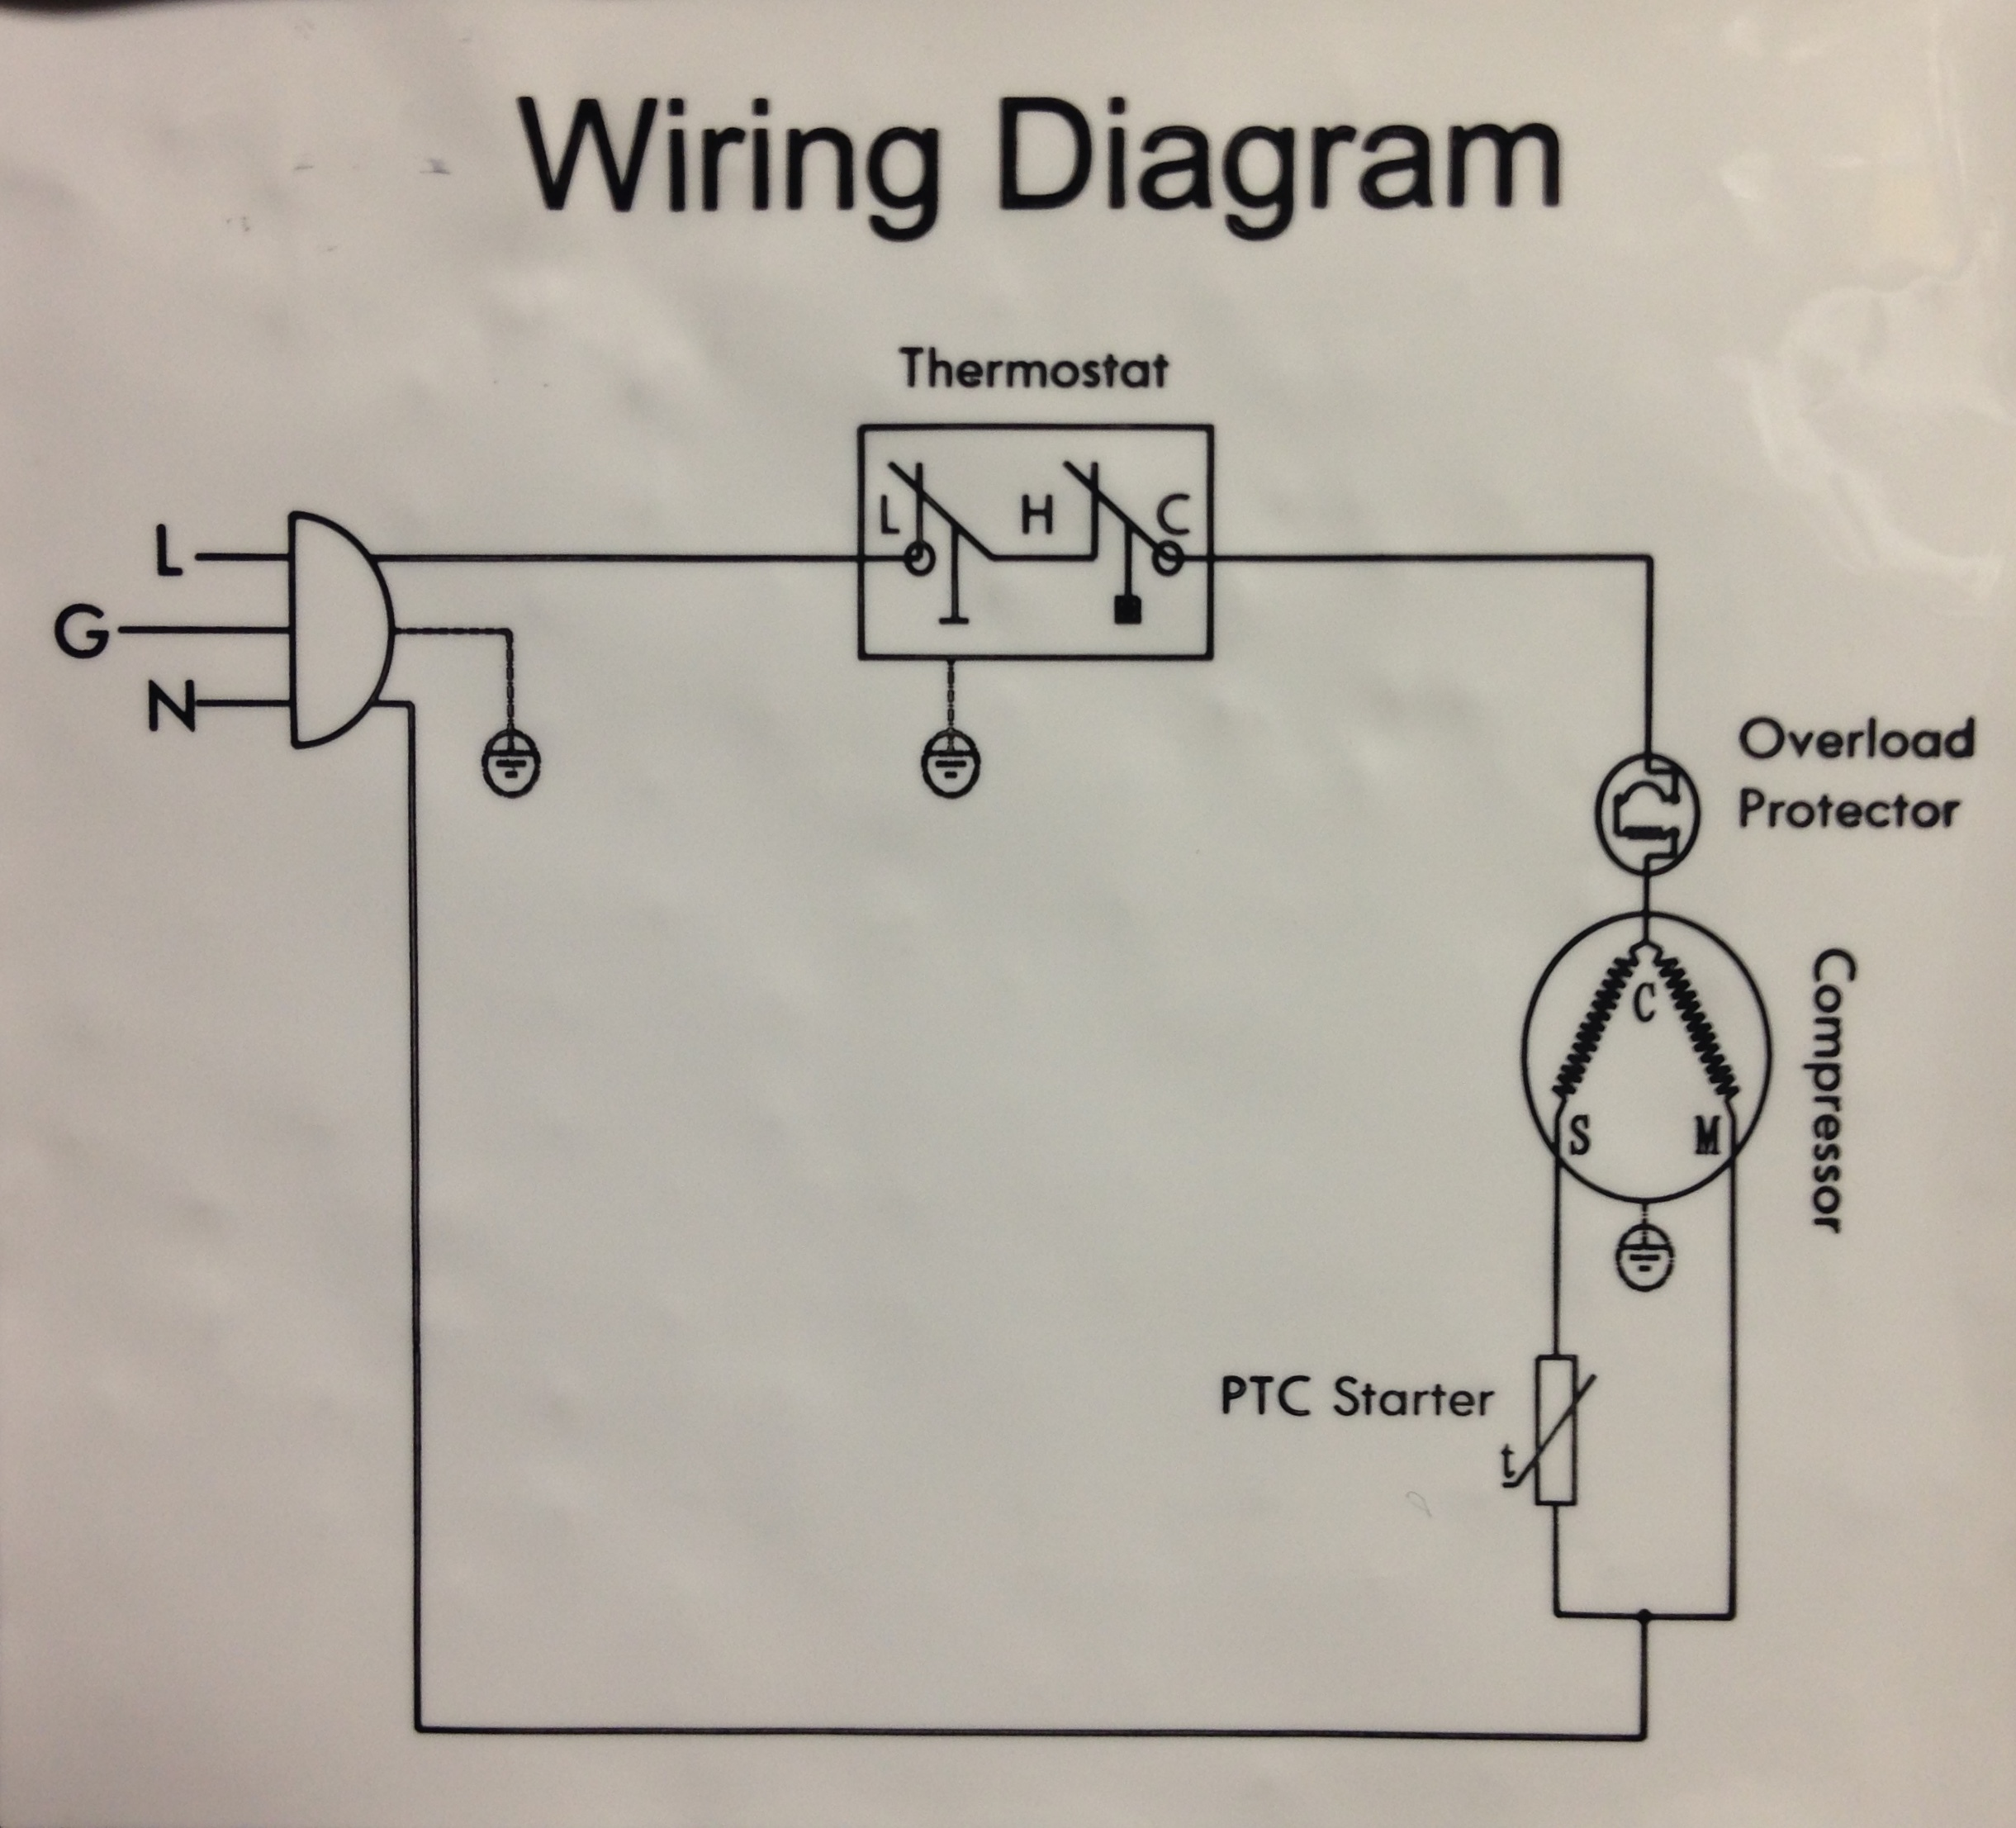 Fridge Wiring Diagram - Wiring Diagram Fascinating on